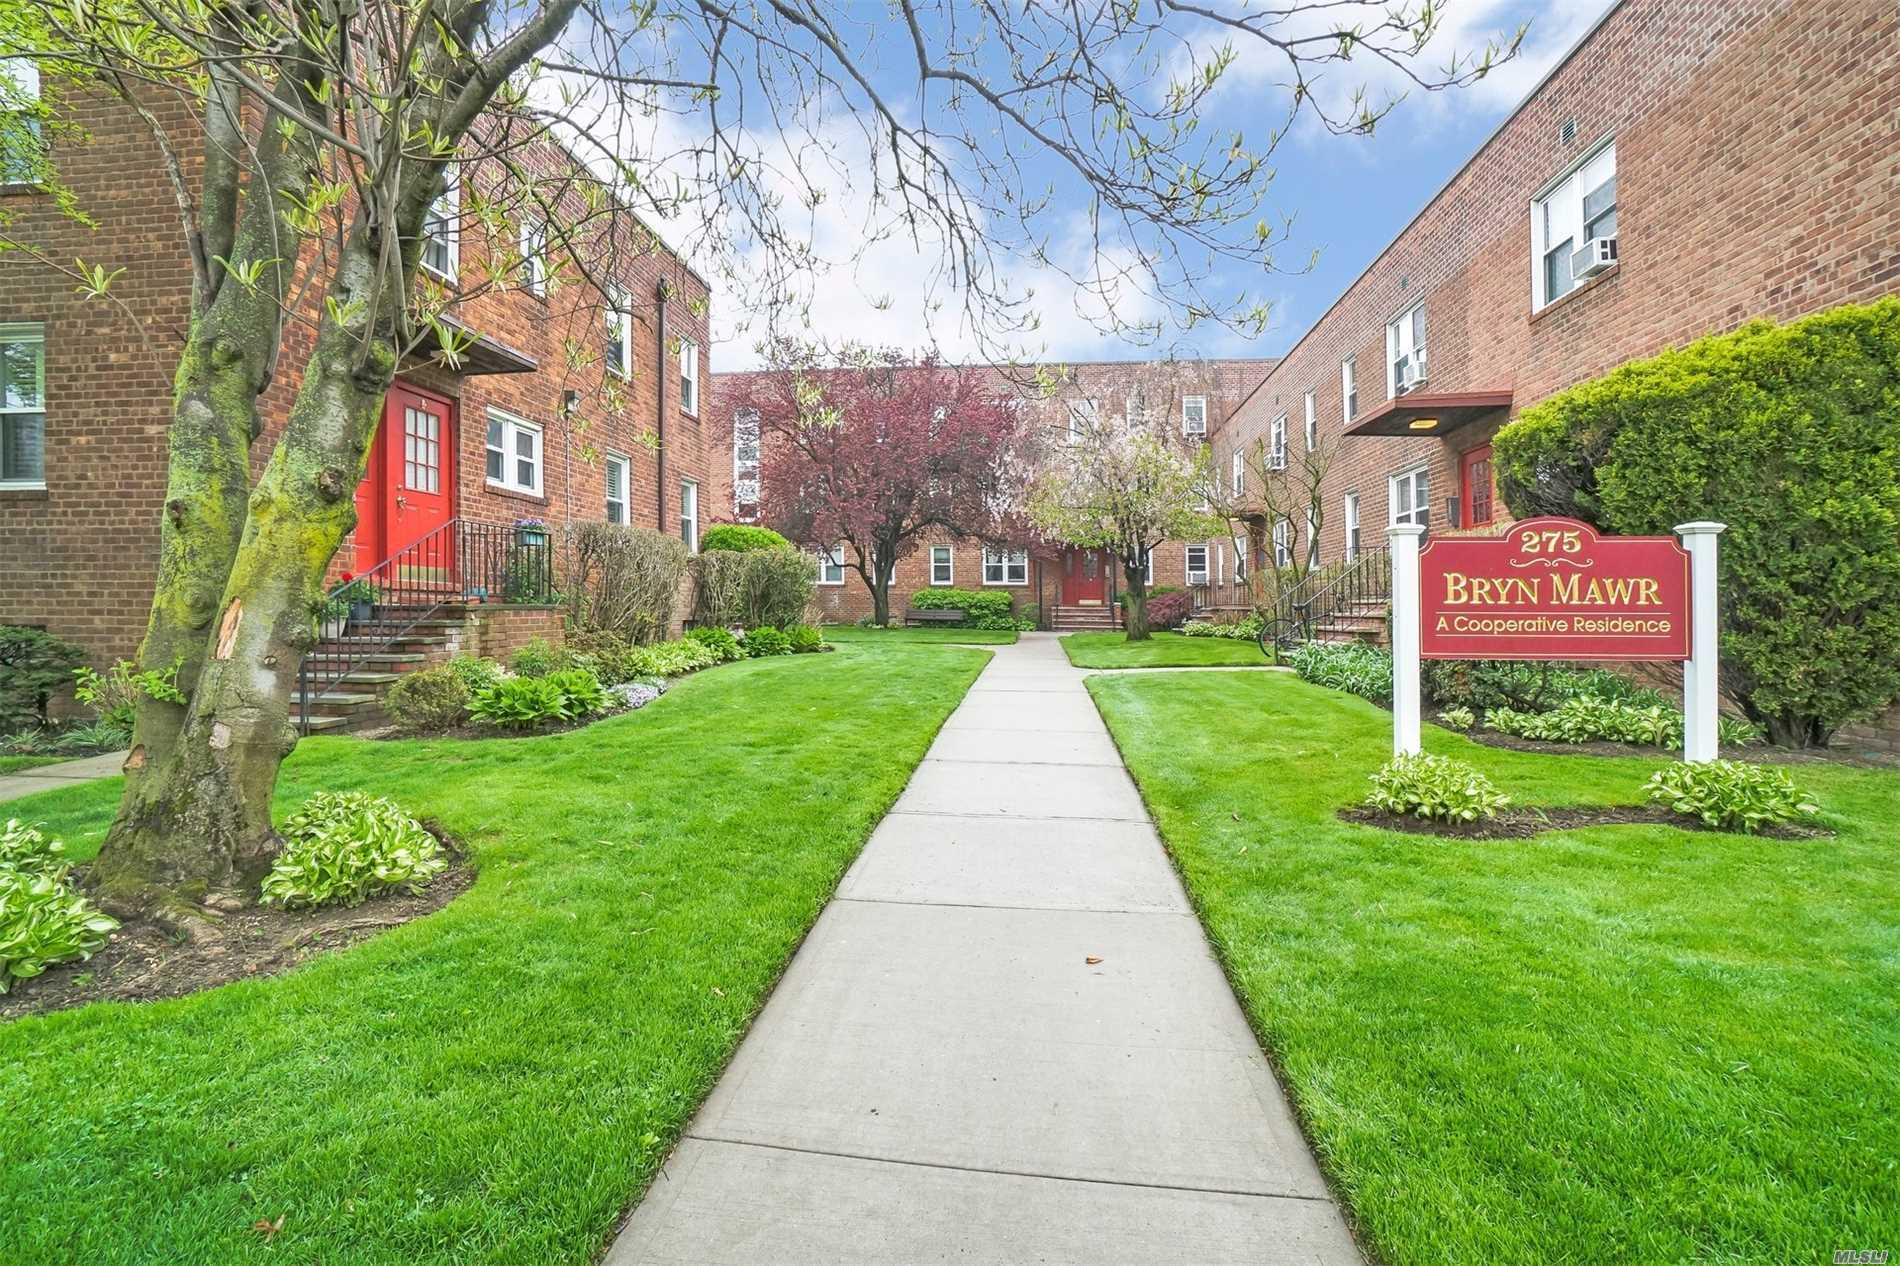 Warm & Welcoming One Bedroom Unit in the Bryn Mawr Complex.  This Unit Overlooks A Beautiful Courtyard. Brand New Kitchen with Soft Close Cabinetry. Hardwood Floors Throughout. Plenty of Closet Space For Storage. Laundry Room on the Grounds. Hunter Douglas Window Treatments Will Be Left.